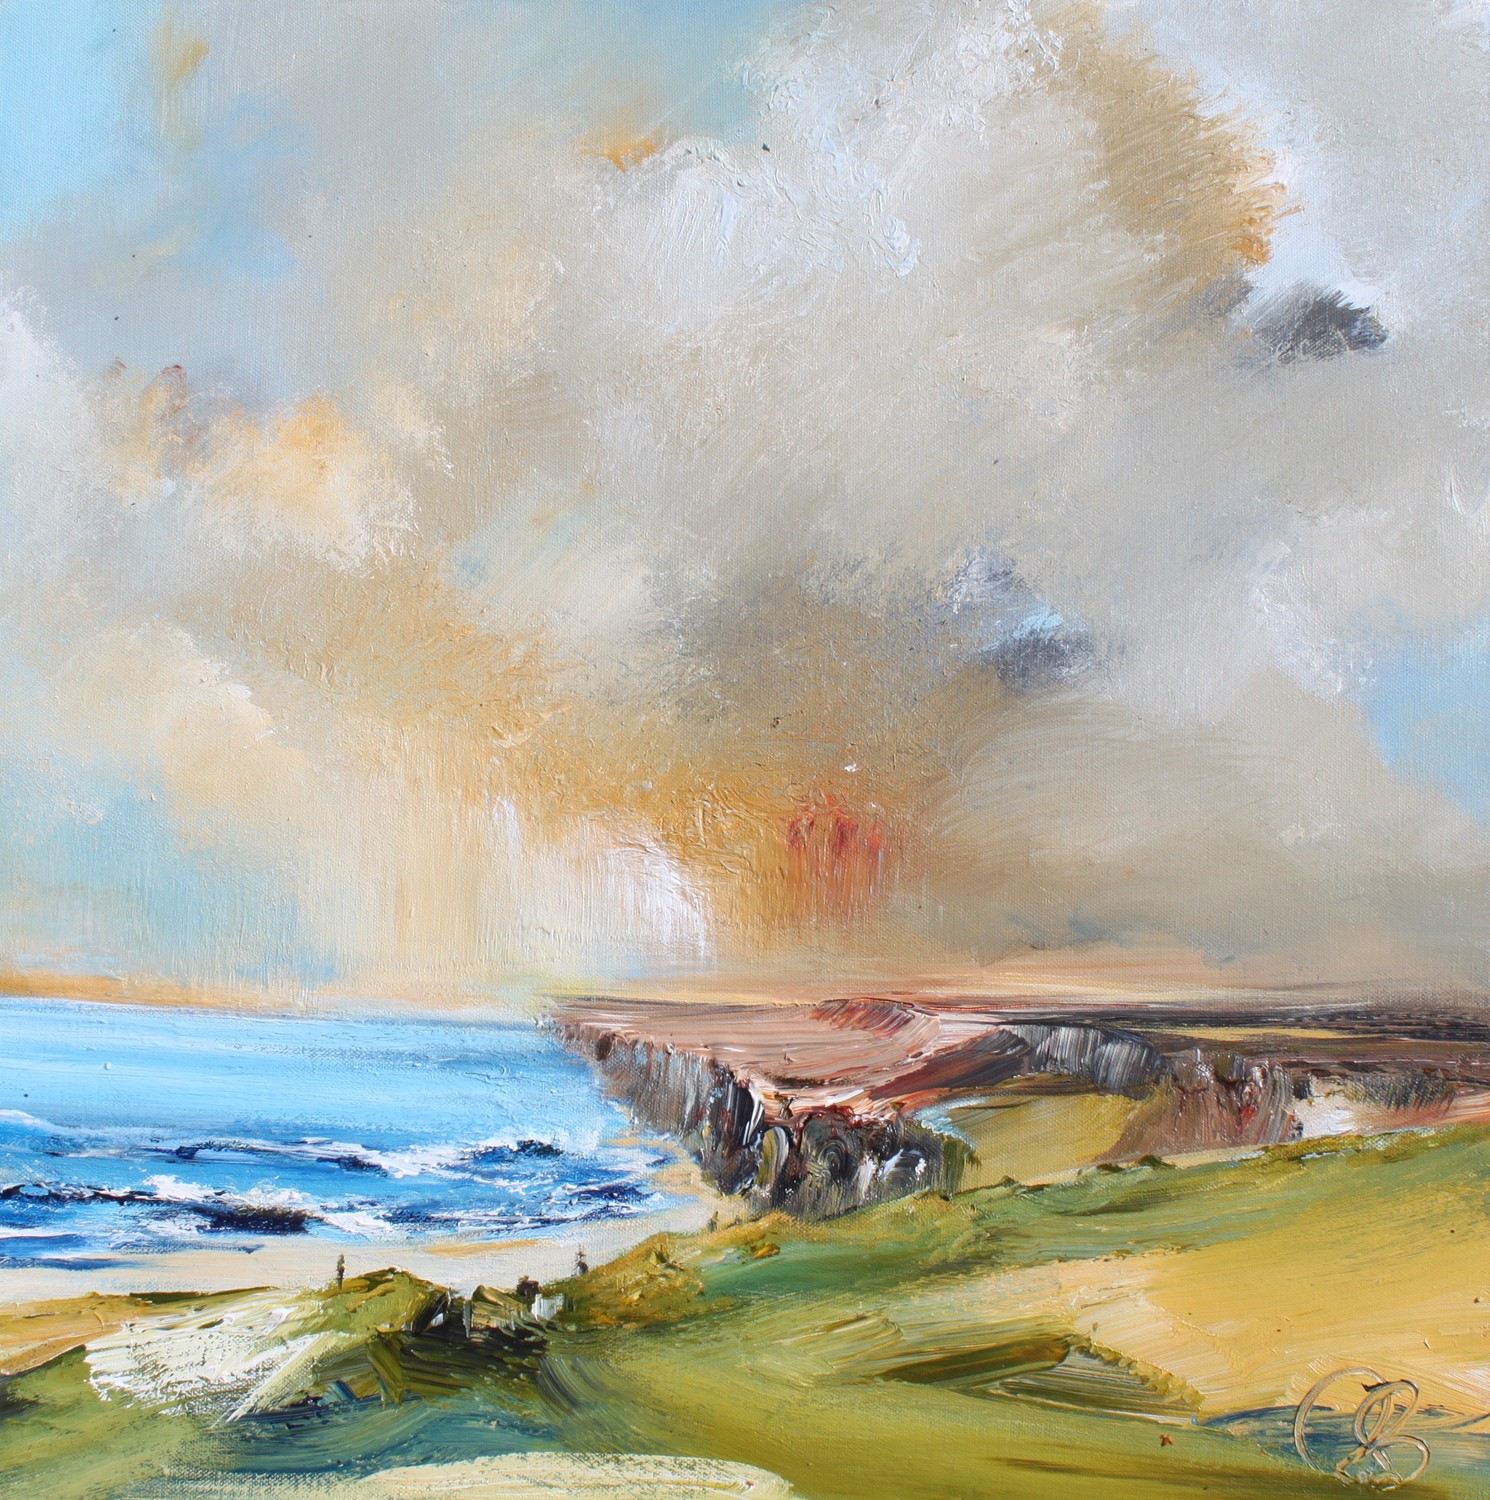 'Looking out to Sea' by artist Rosanne Barr